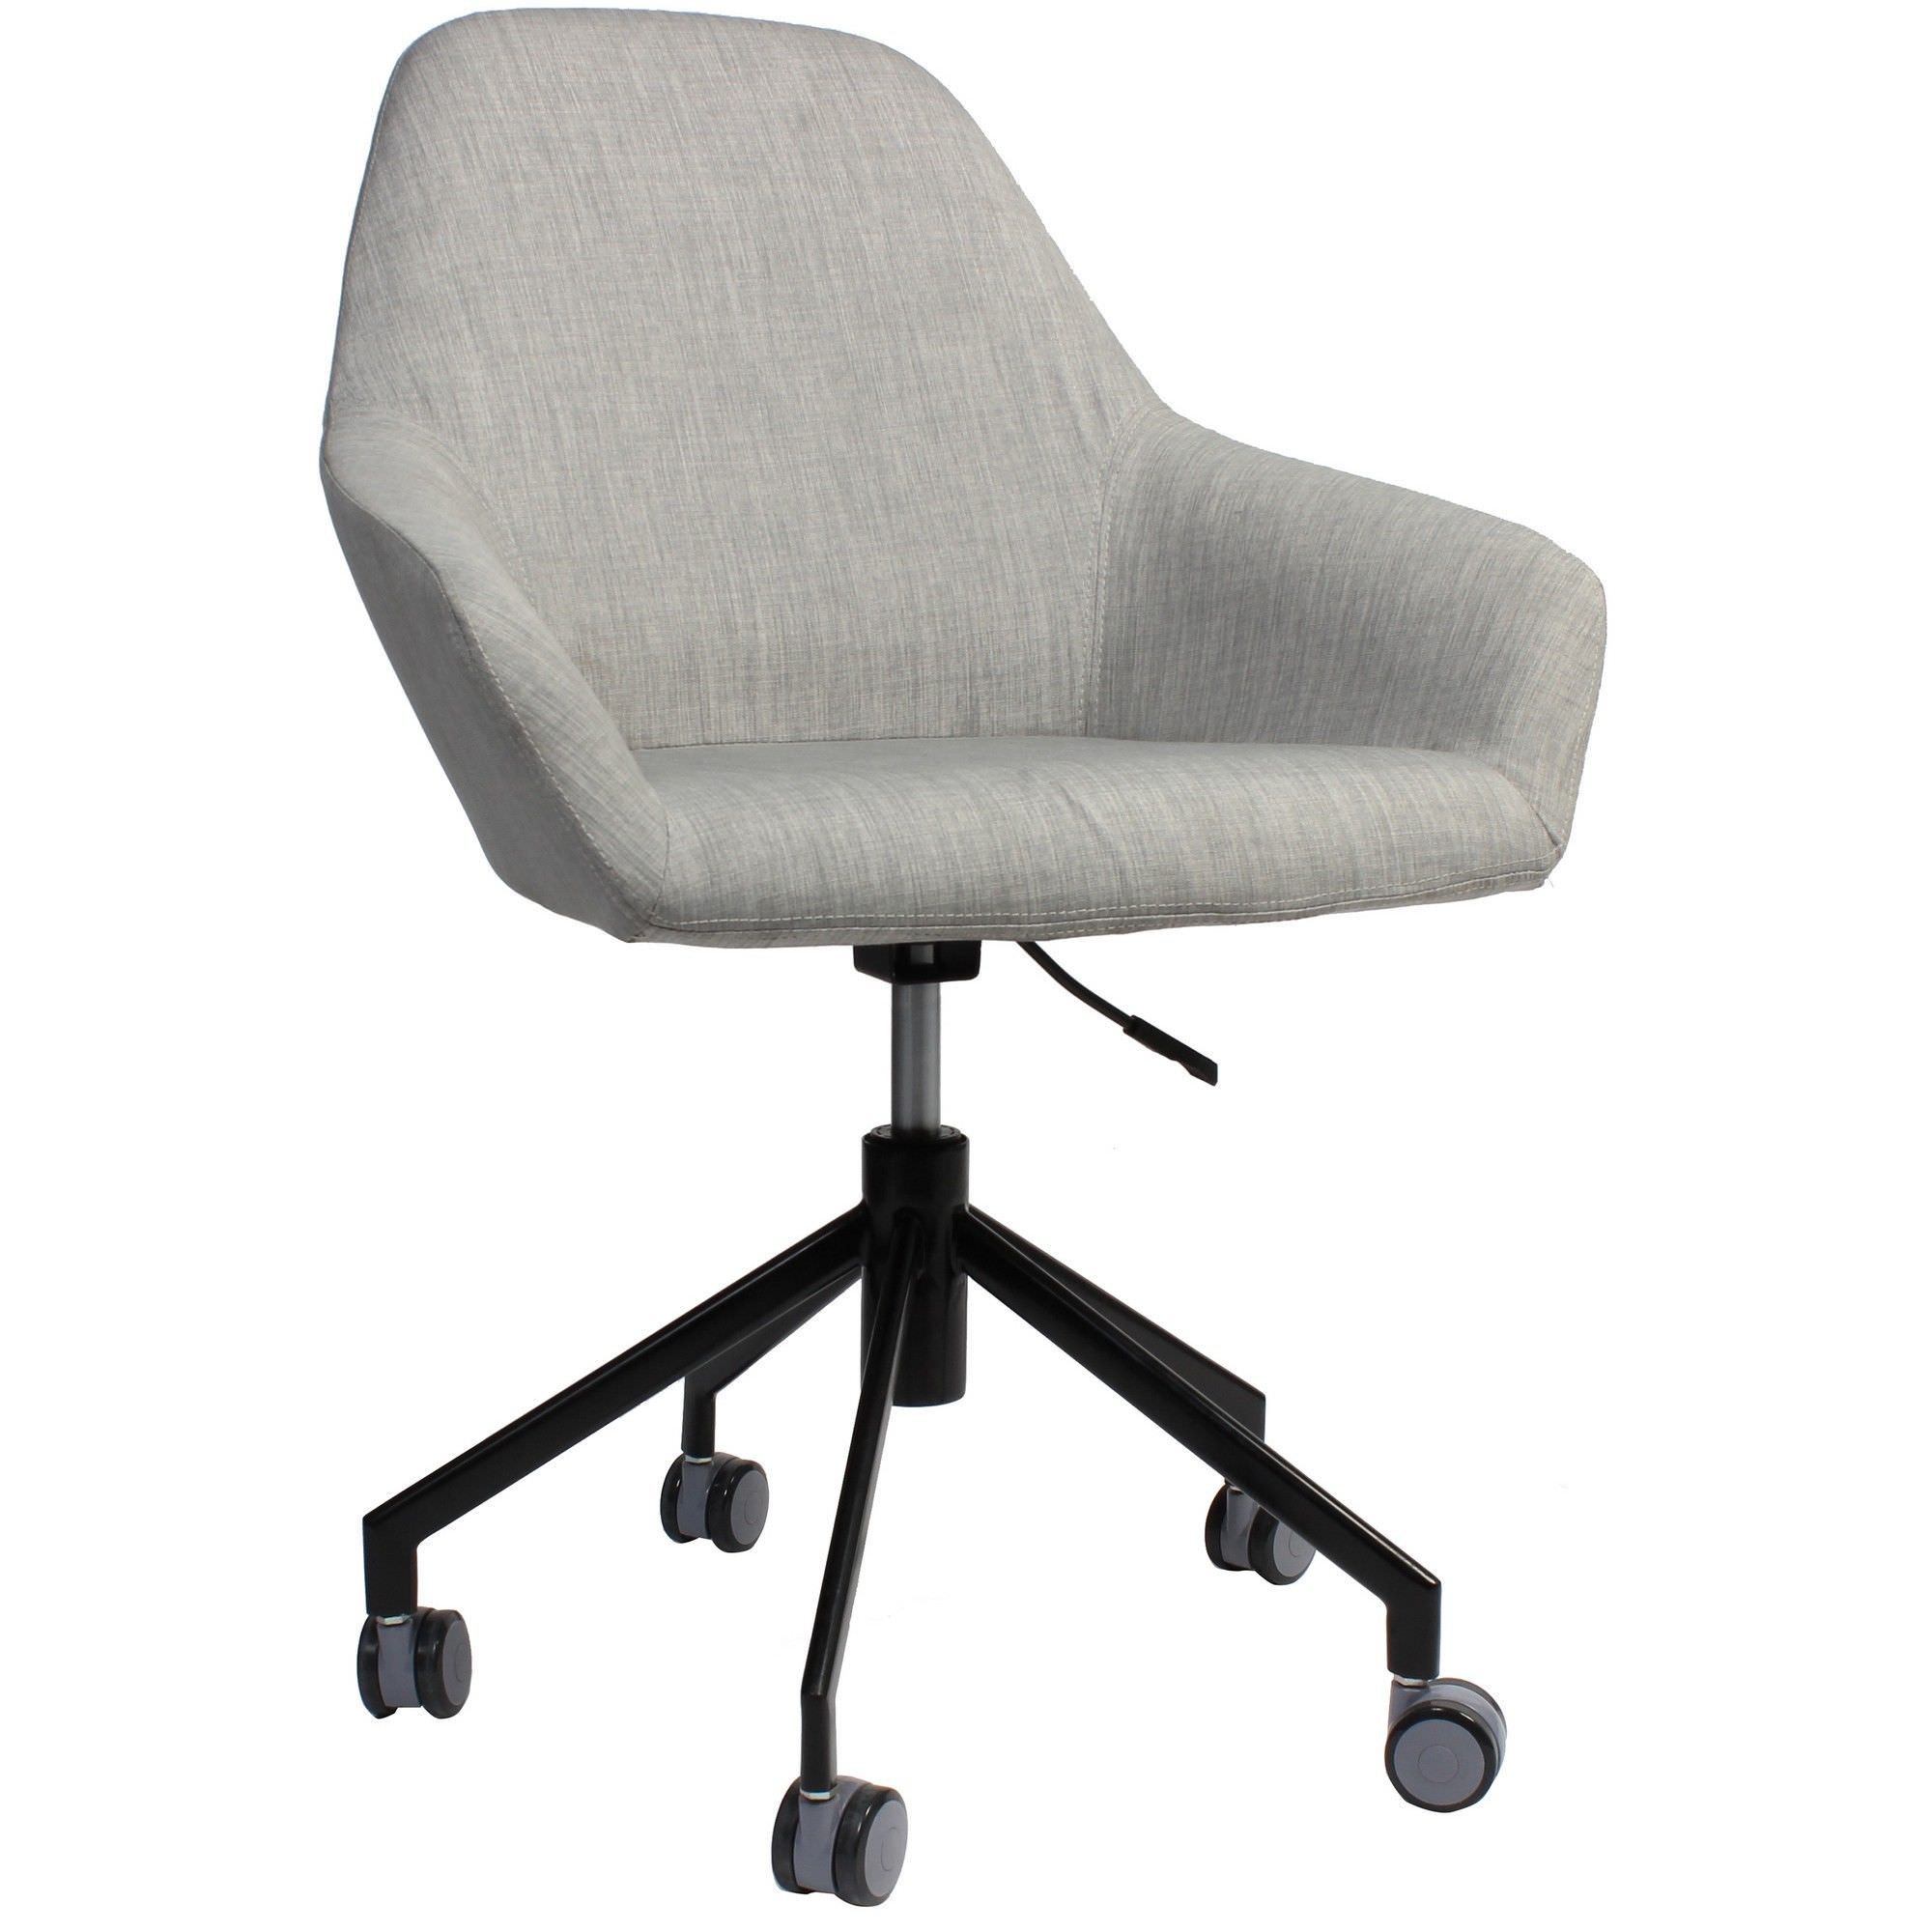 Bronte Commercial Grade Gas Lift Fabric Office Armchair, Light Grey / Black